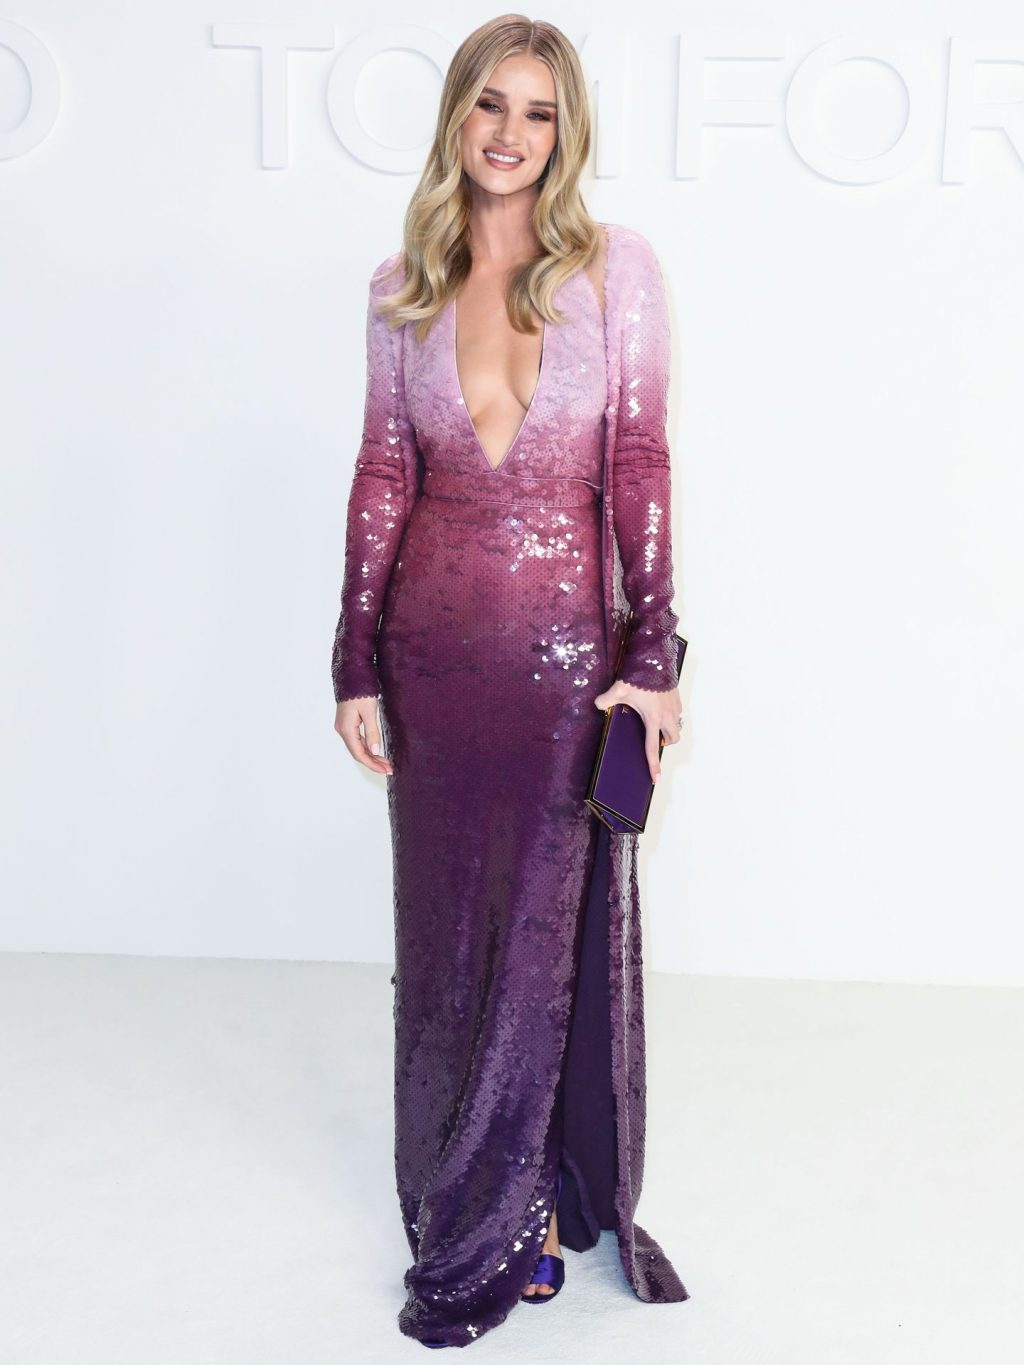 Rosie Huntington Whiteley Sexy The Fappening Blog 80 1024x1365 - Rosie Huntington-Whiteley Shows Her Cleavage at the Tom Ford Fashion Show (115 Photos)